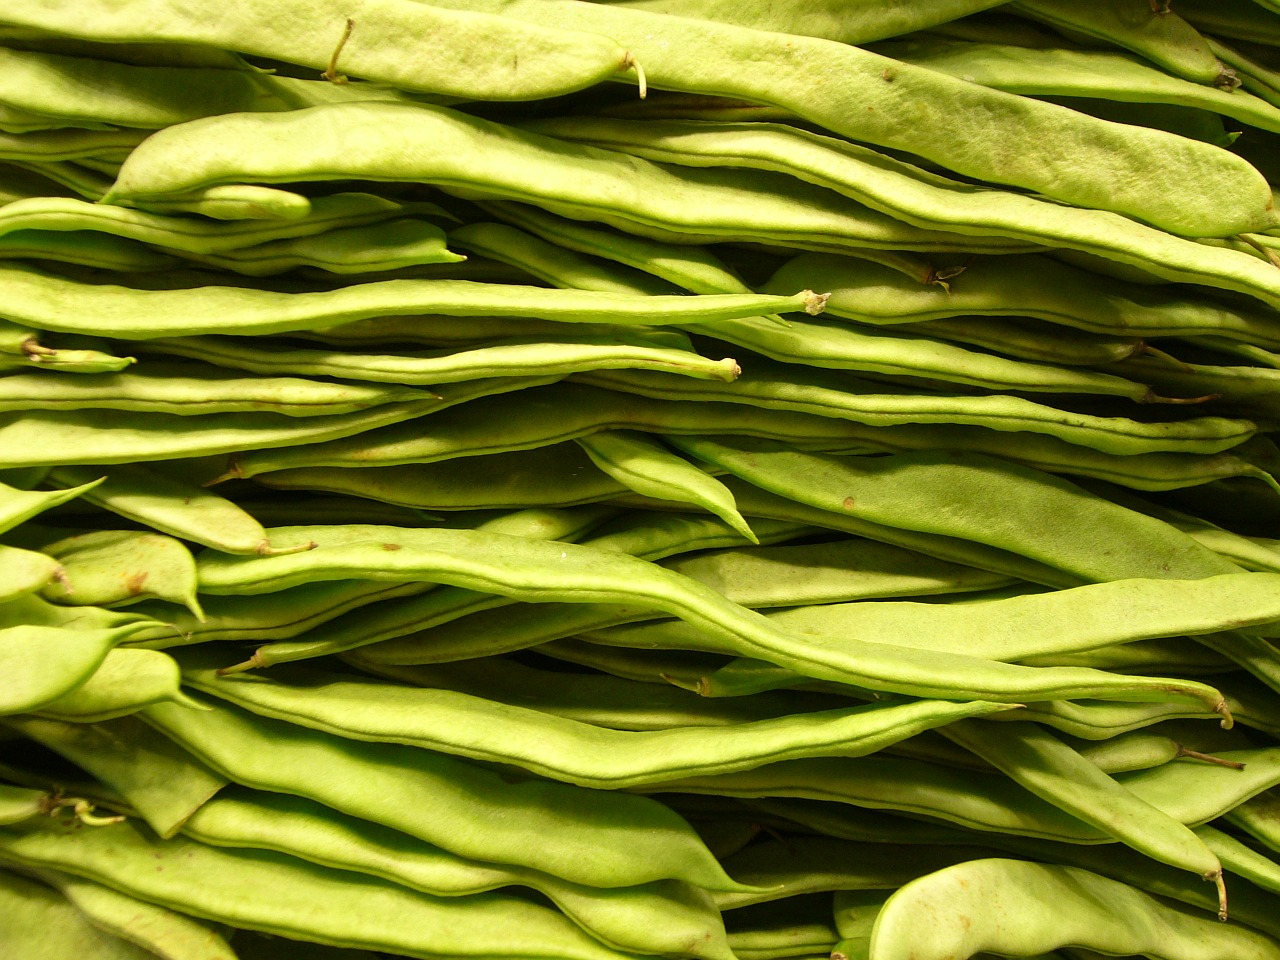 beans,vegetables,green,cook,market,healthy,food,free pictures, free photos, free images, royalty free, free illustrations, public domain